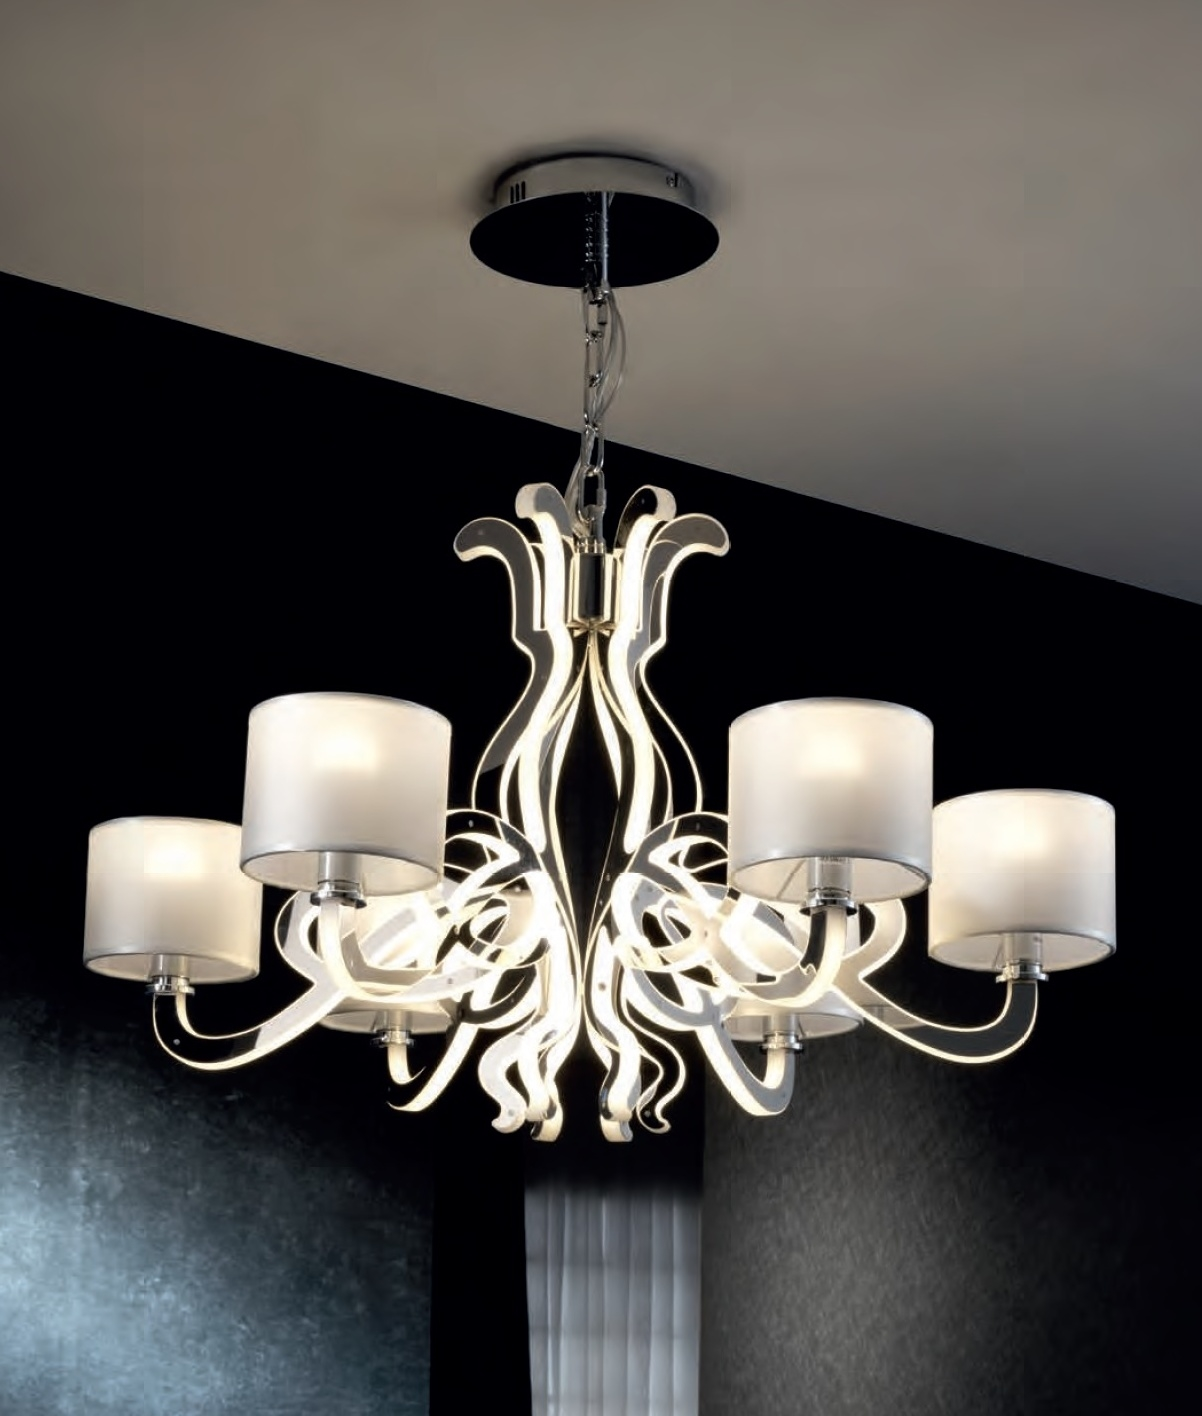 Ghost design 6 light chandelier with shades leds - Can light chandelier ...